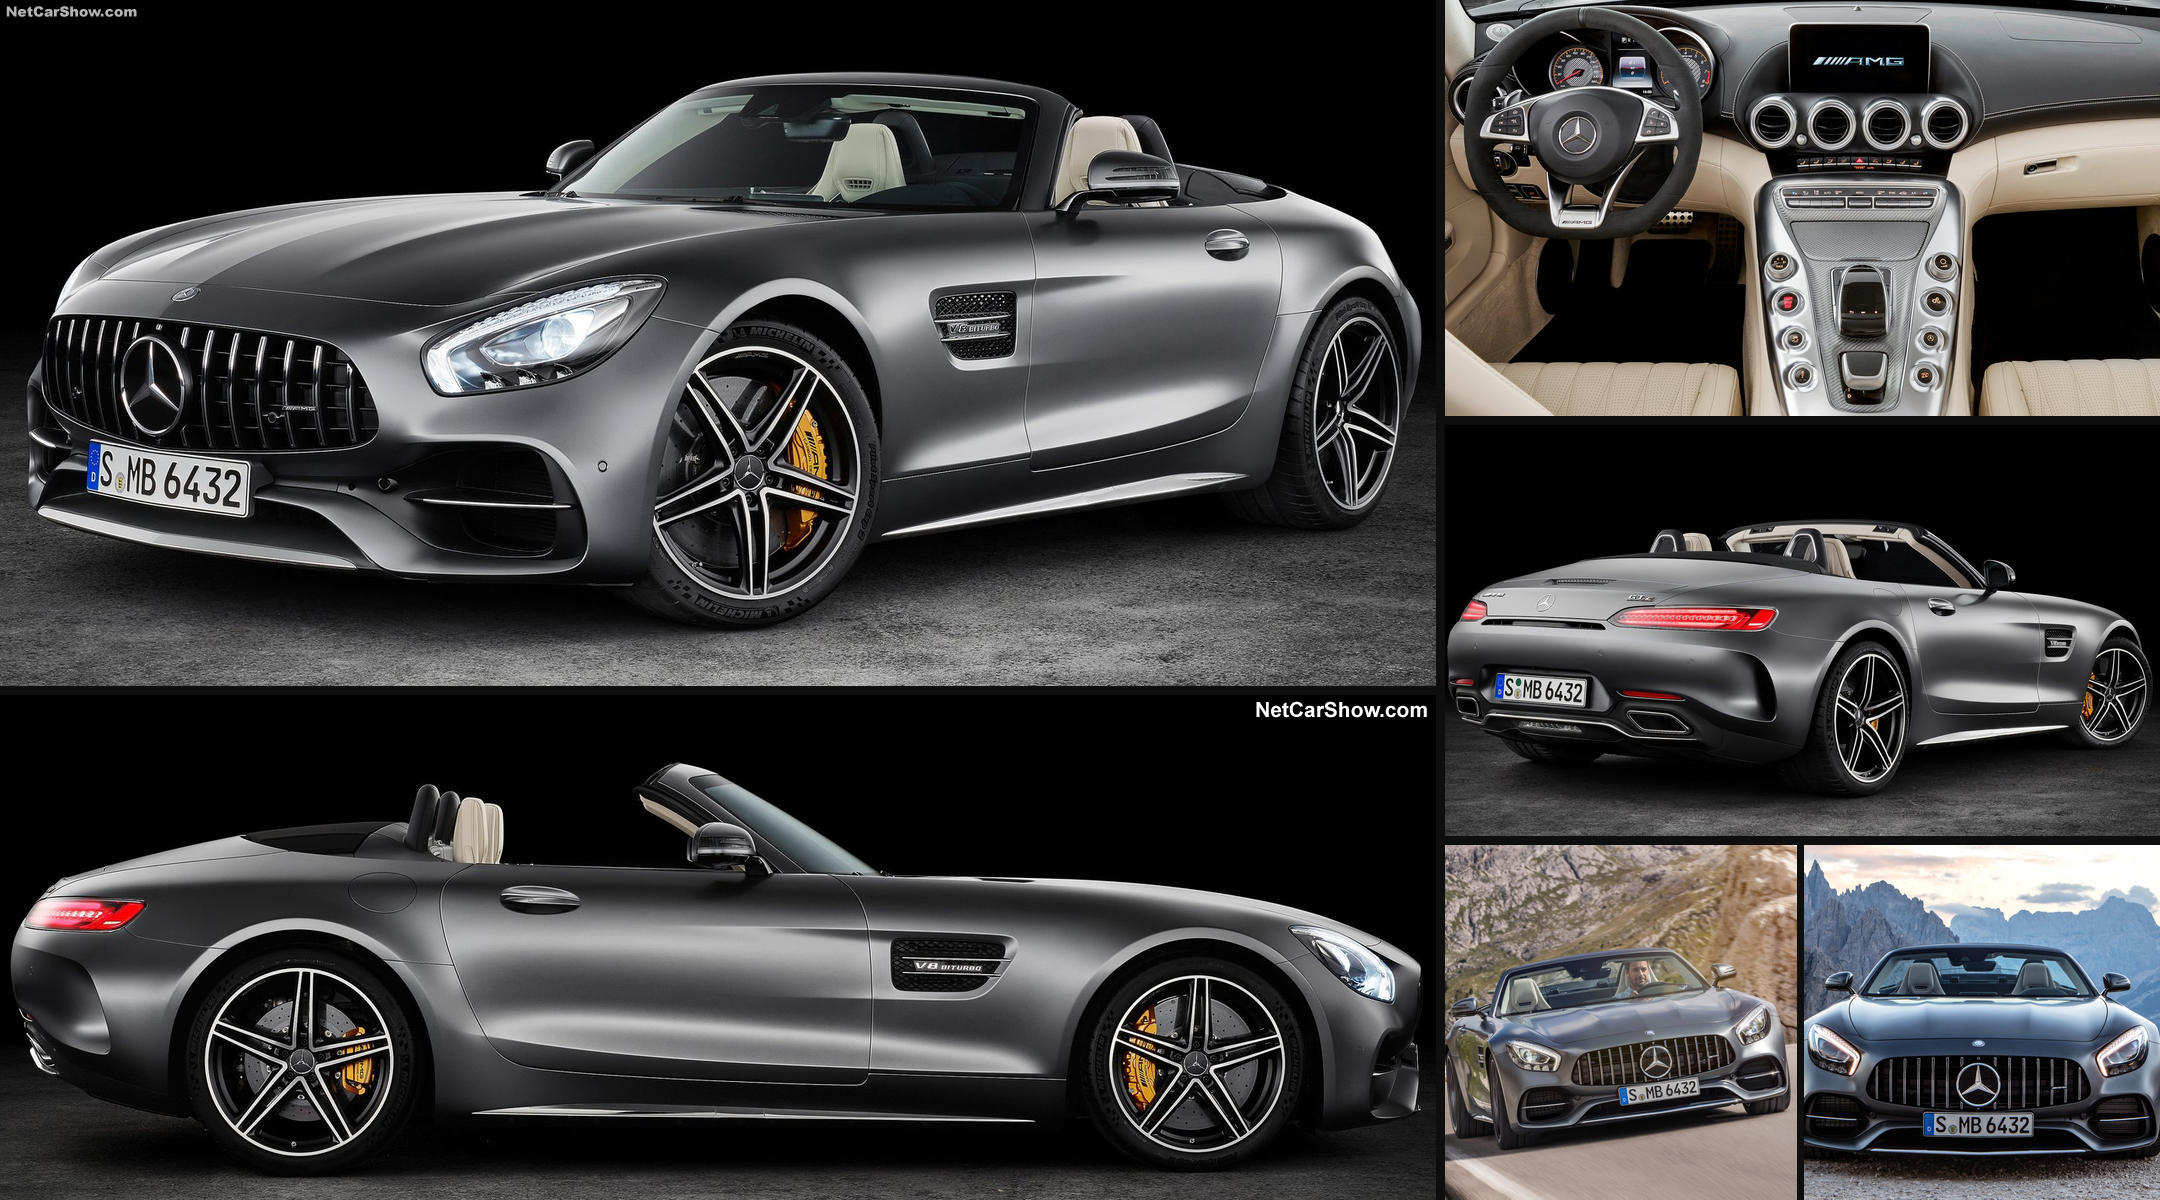 mercedes amg gt roadster avec un look d 39 enfer v8 biturbo. Black Bedroom Furniture Sets. Home Design Ideas